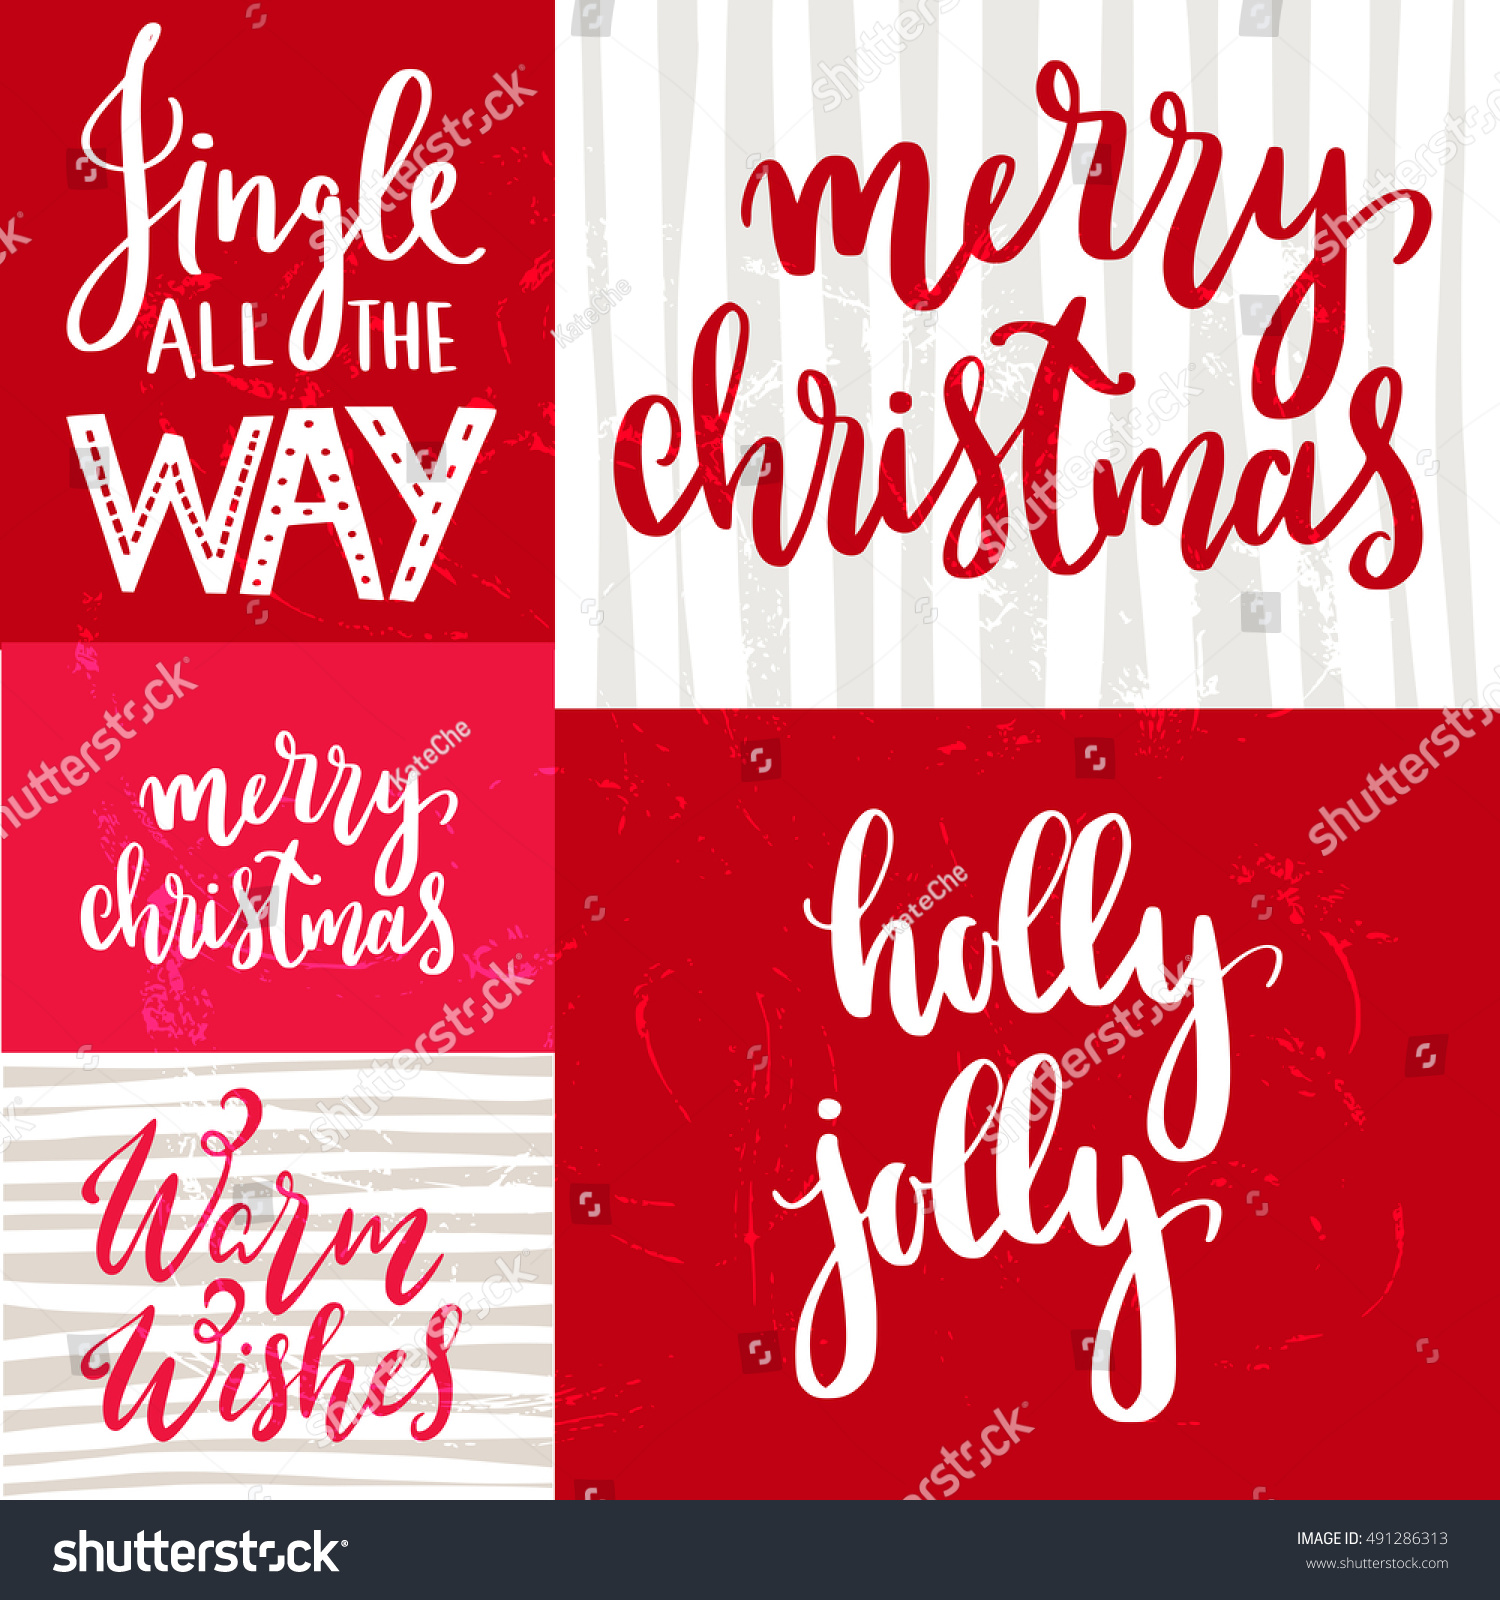 Christmas quotes sayings postcards poster banner stock for Christmas decoration quotes